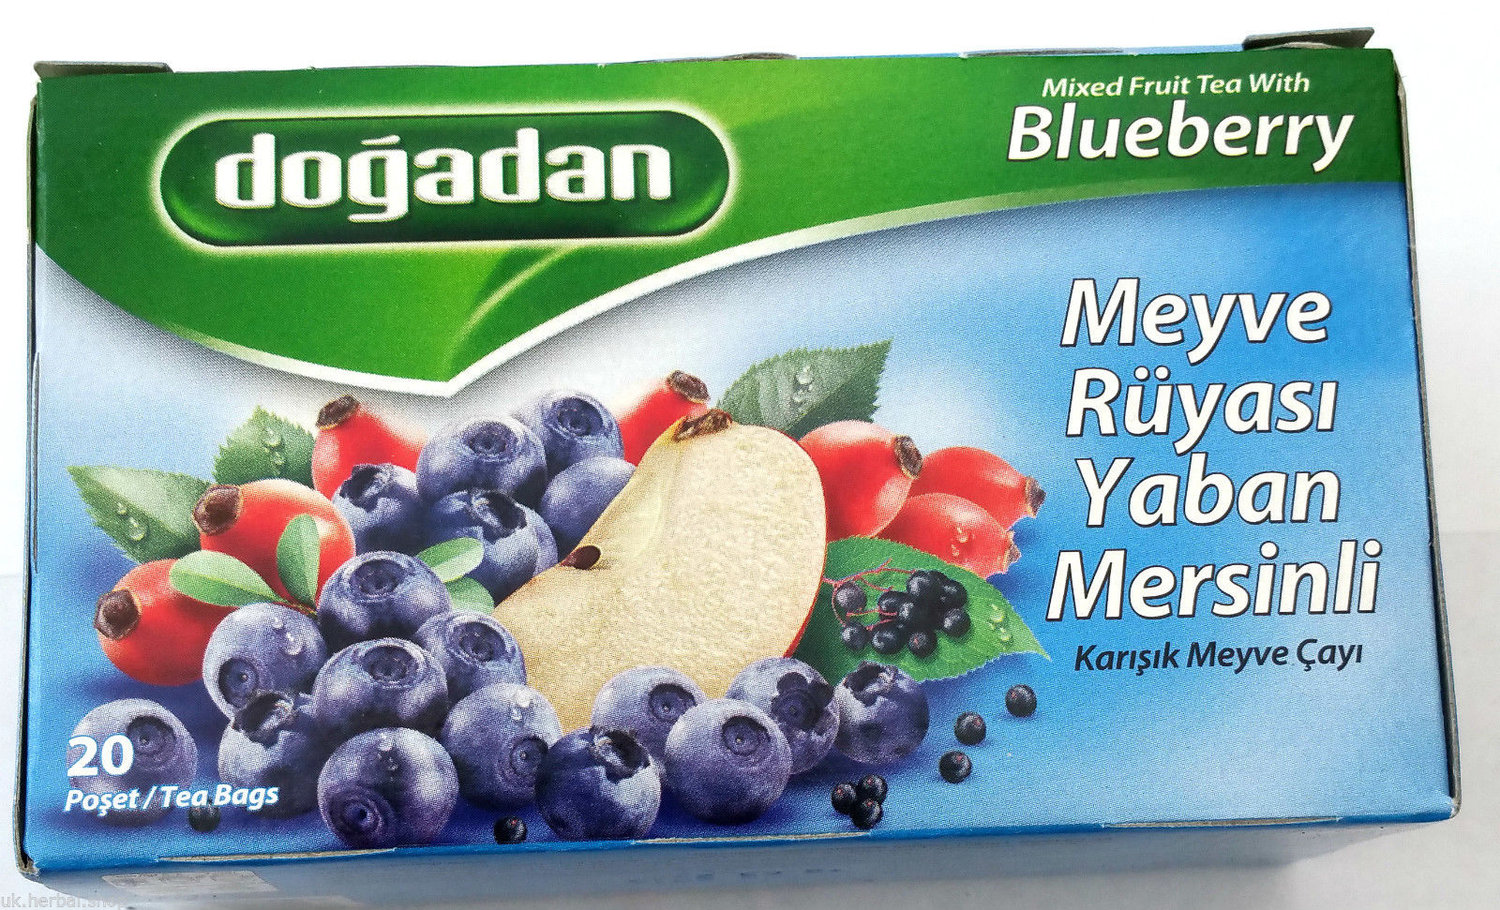 Blueberry Tea Dogadan/20 tea bags/Made in Turkey